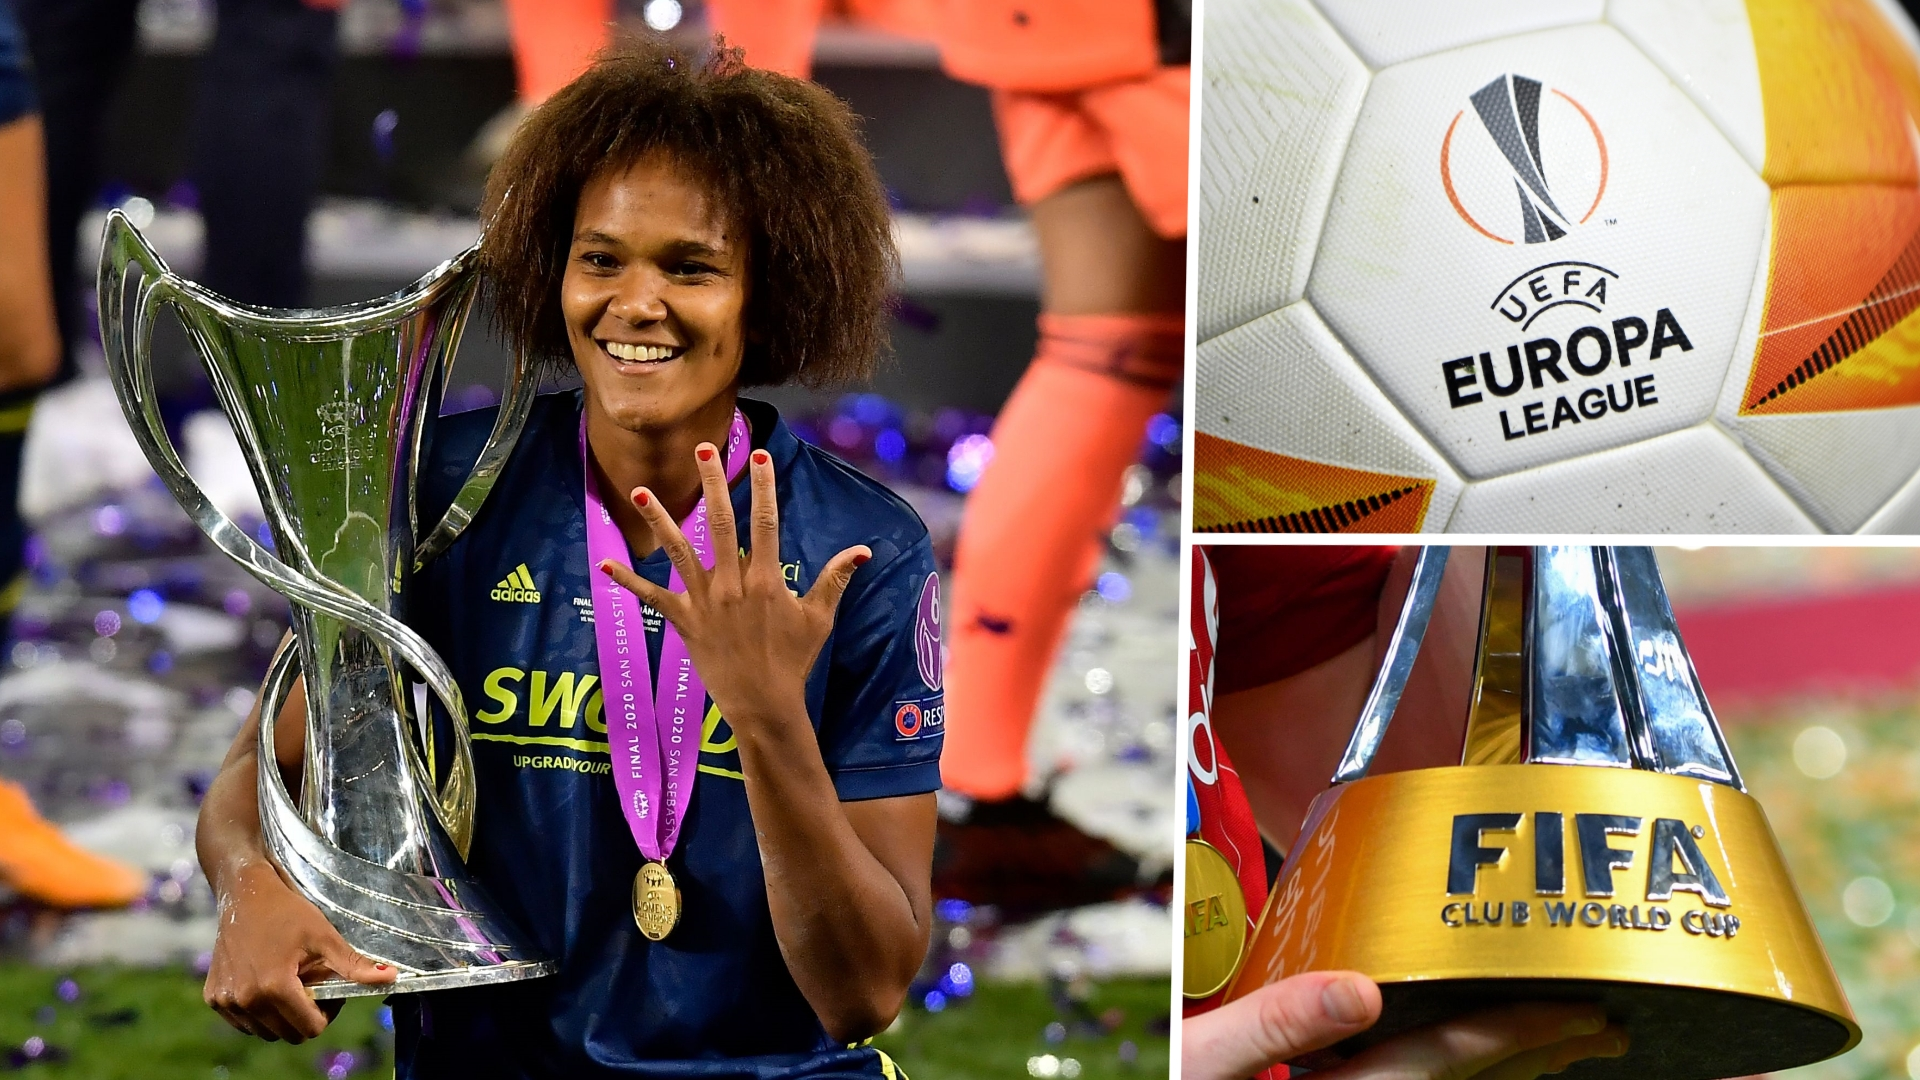 womens champions league europa league club world cup composite 1gn5iclyad3s0174420fekdnid